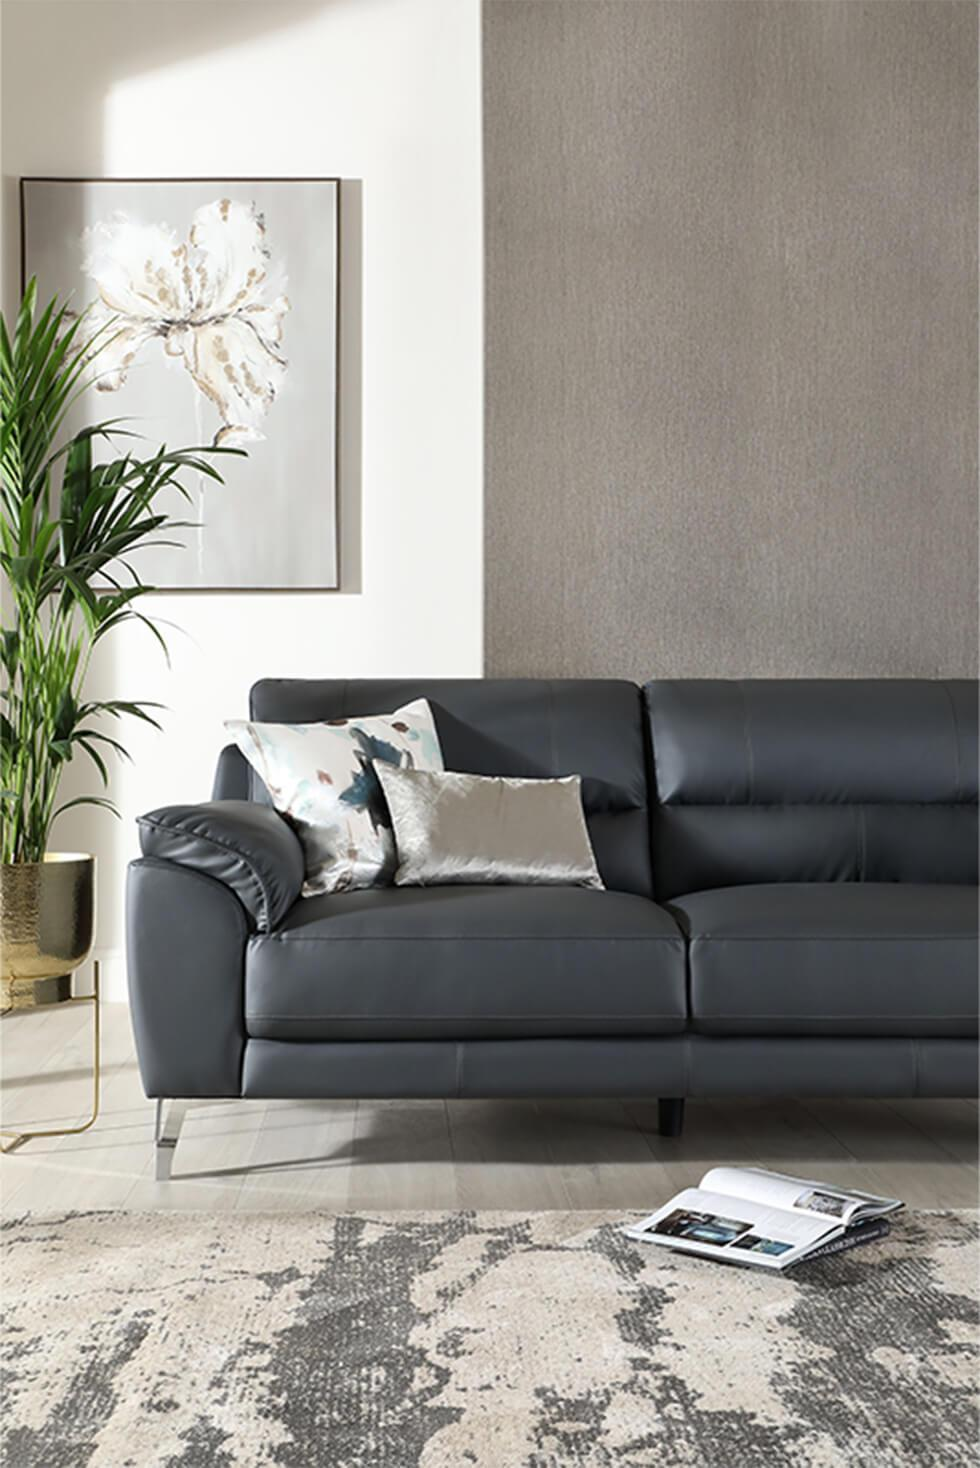 A neutral grey and beige living room with a black leather sofa, patterned rug and indoor plant